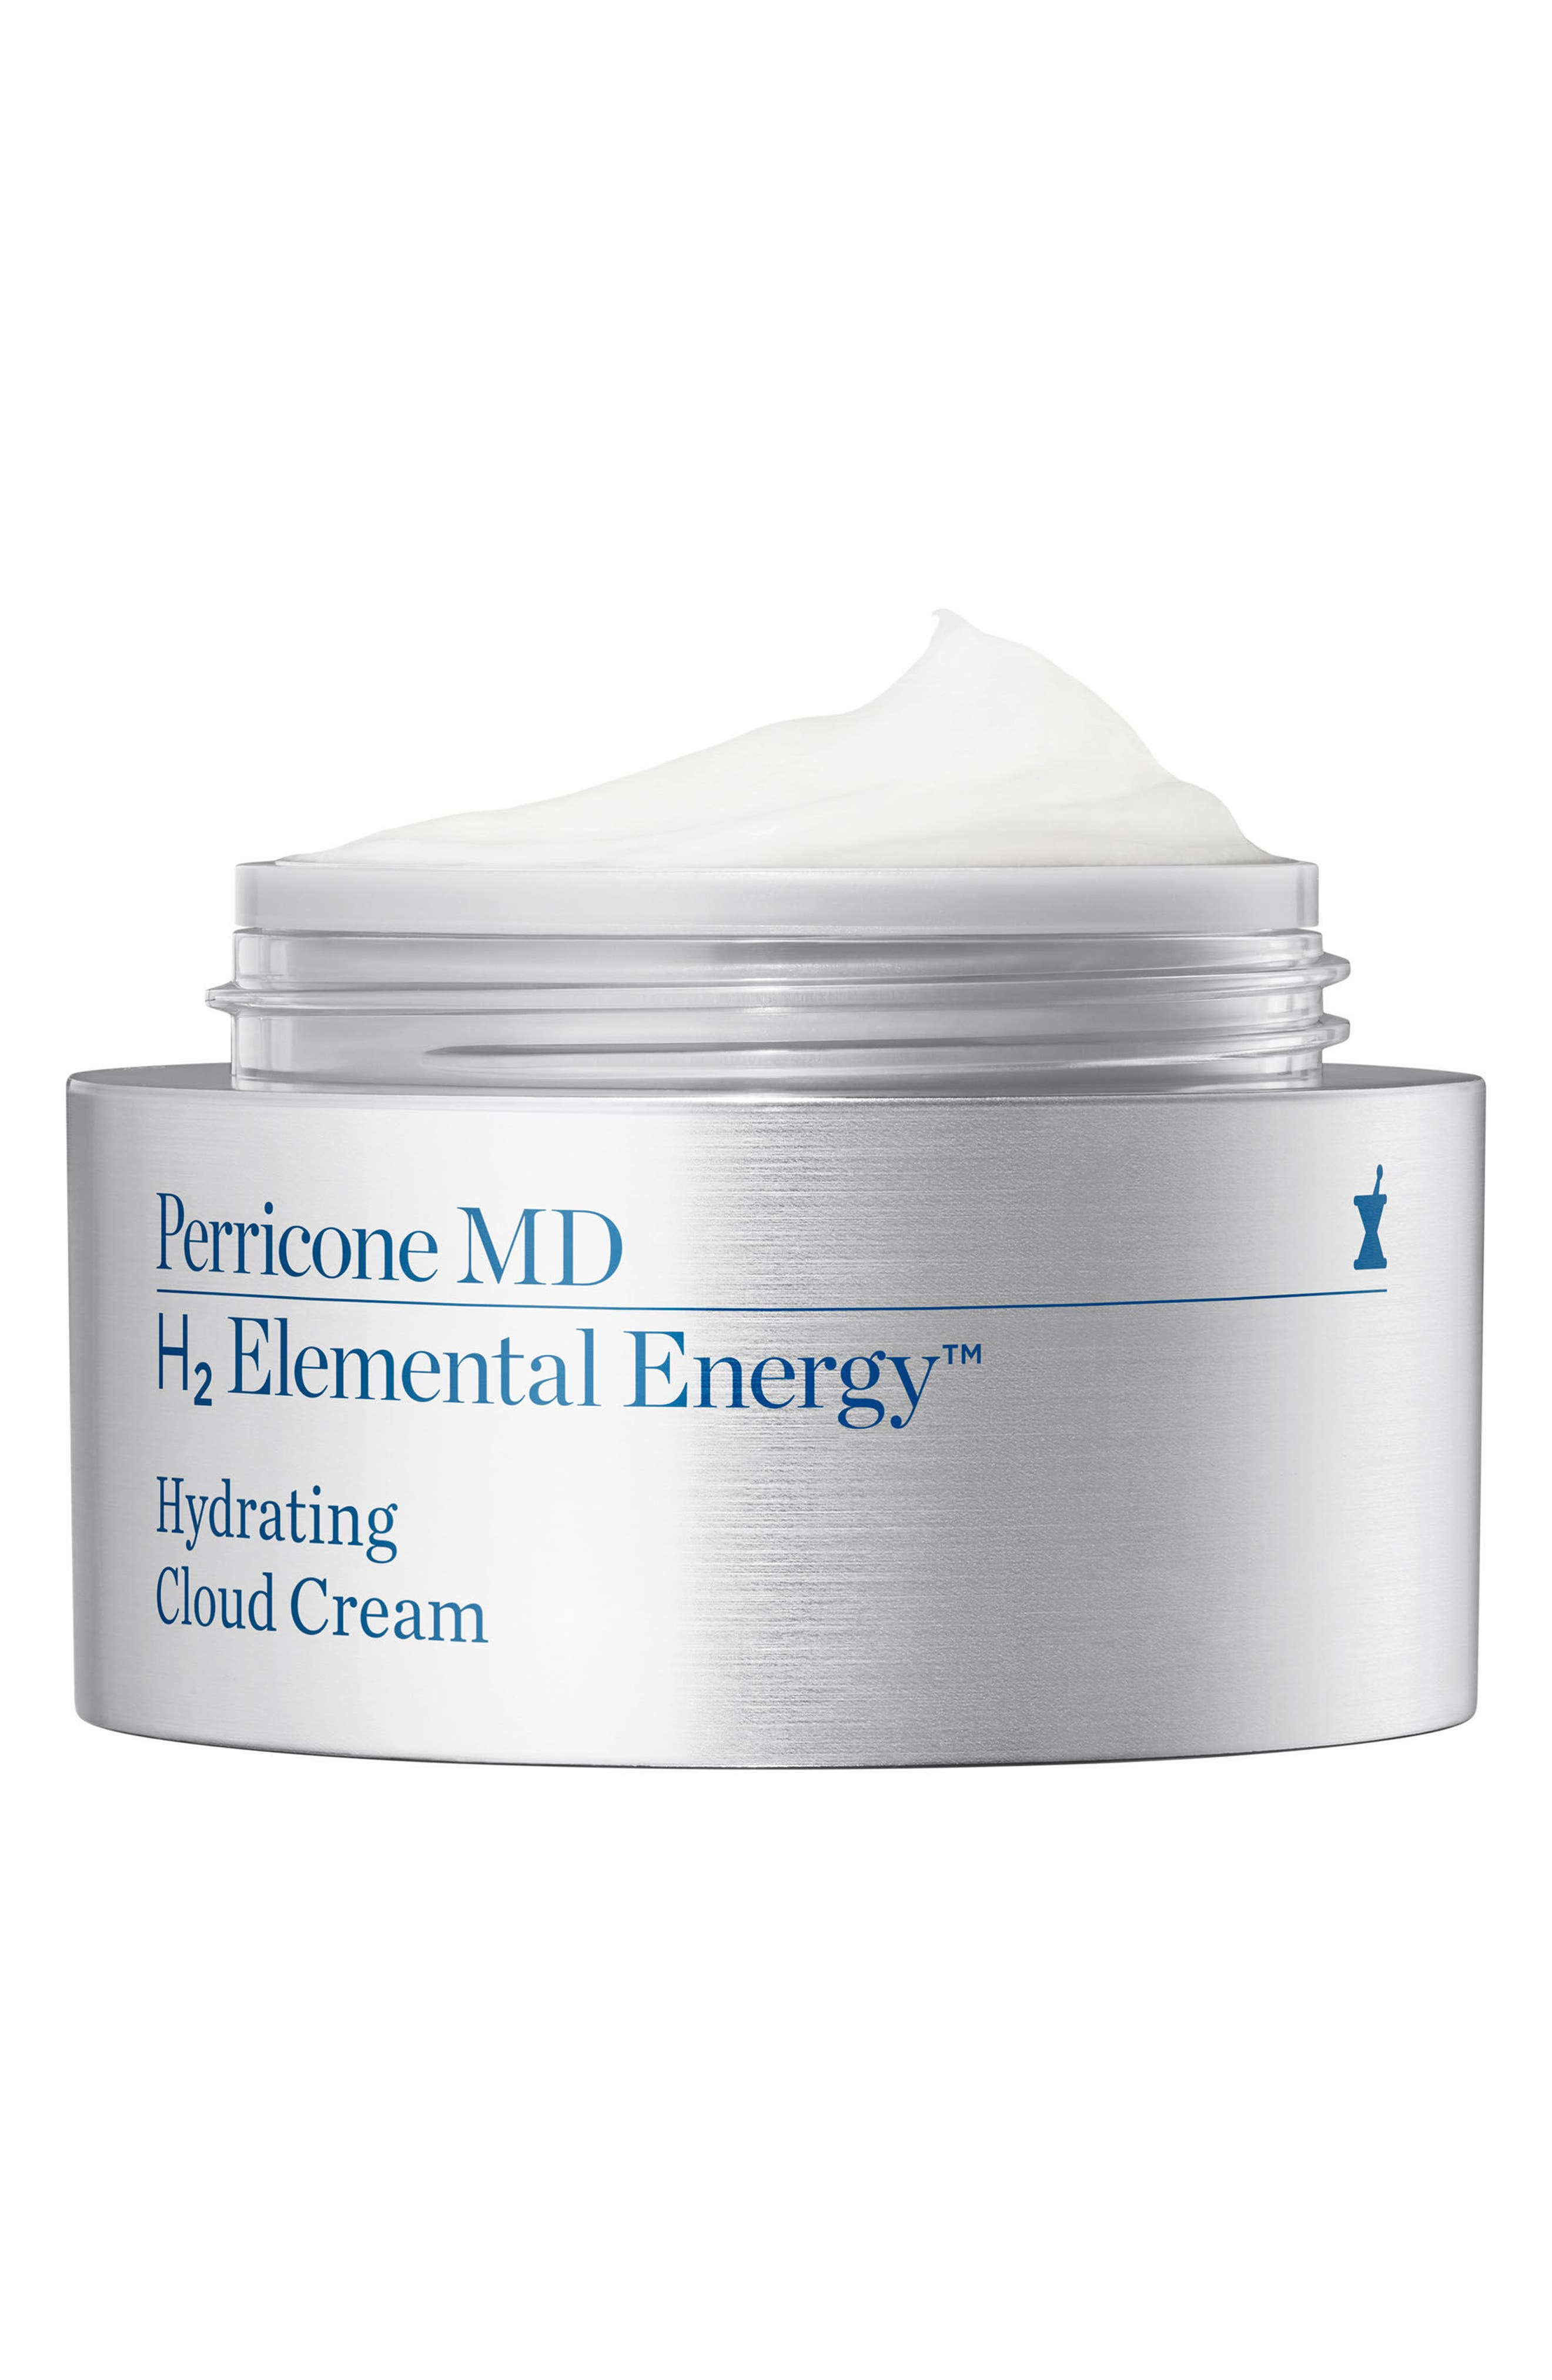 H2 Elemental Energy Hydrating Cloud Cream,                             Alternate thumbnail 4, color,                             No Color